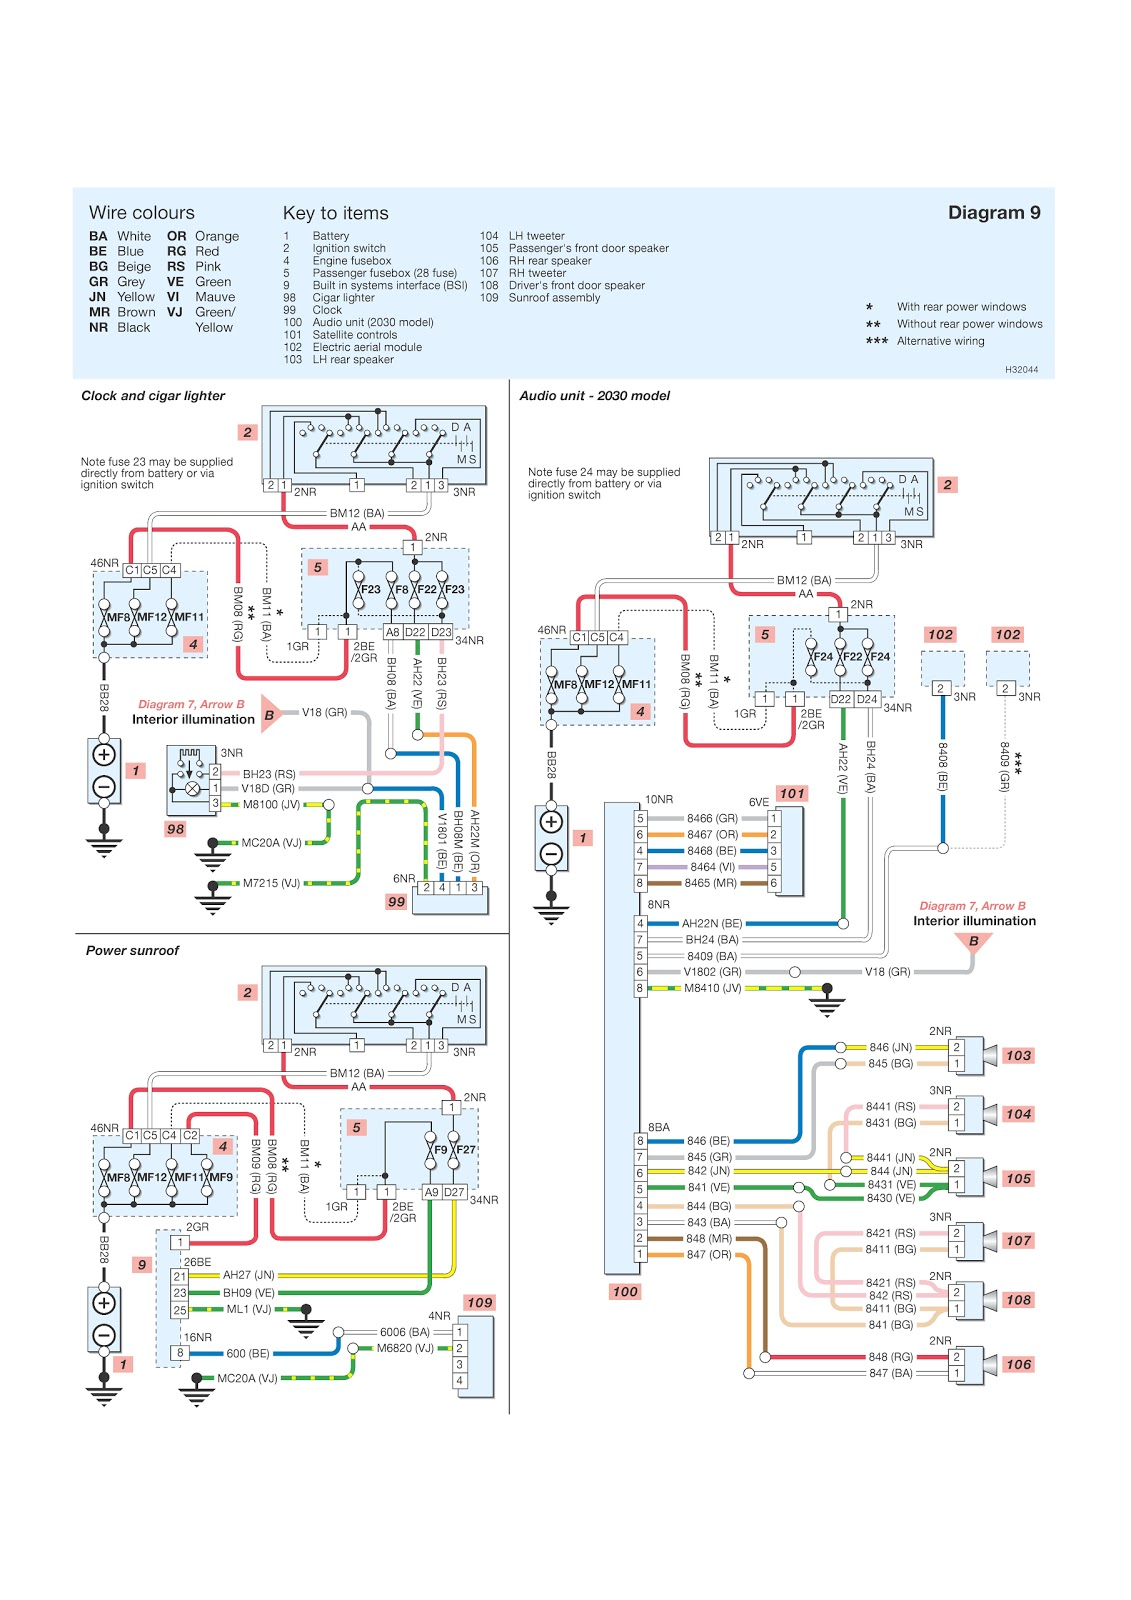 Peugeot 206 System Wiring Diagrams Clock, Cigar Lighter